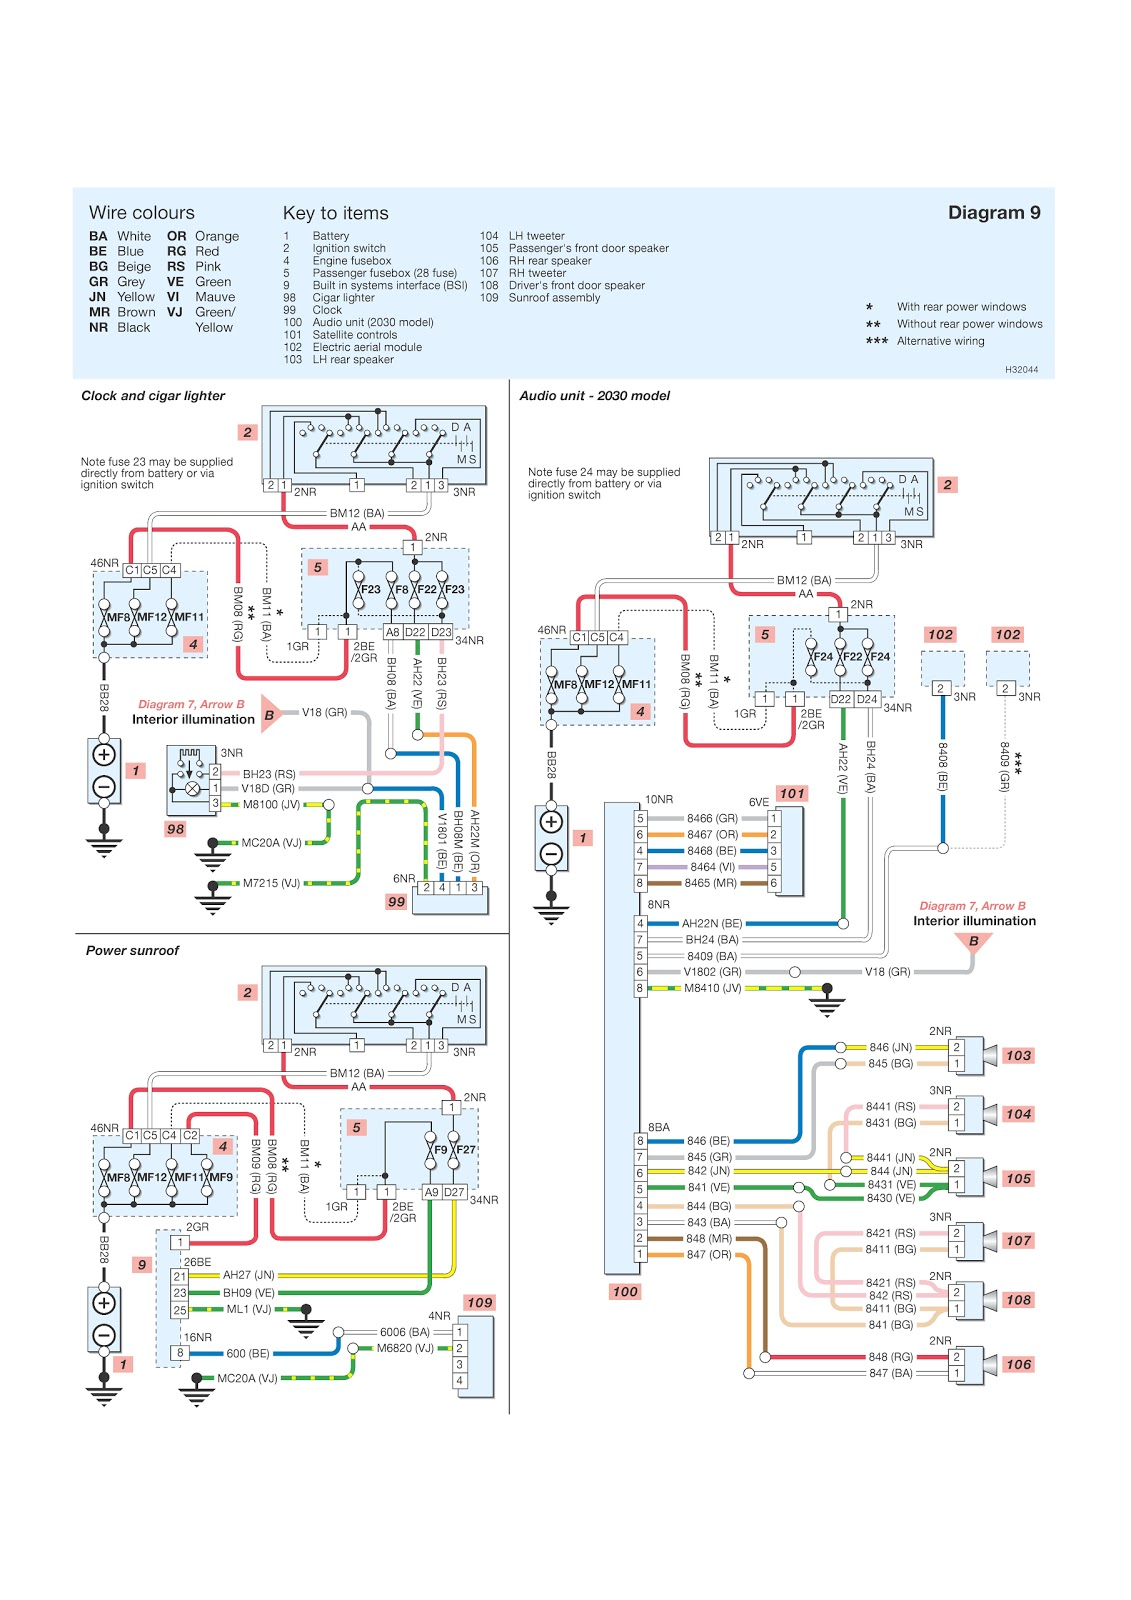 Peugeot 206 System Wiring Diagrams Clock, Cigar Lighter